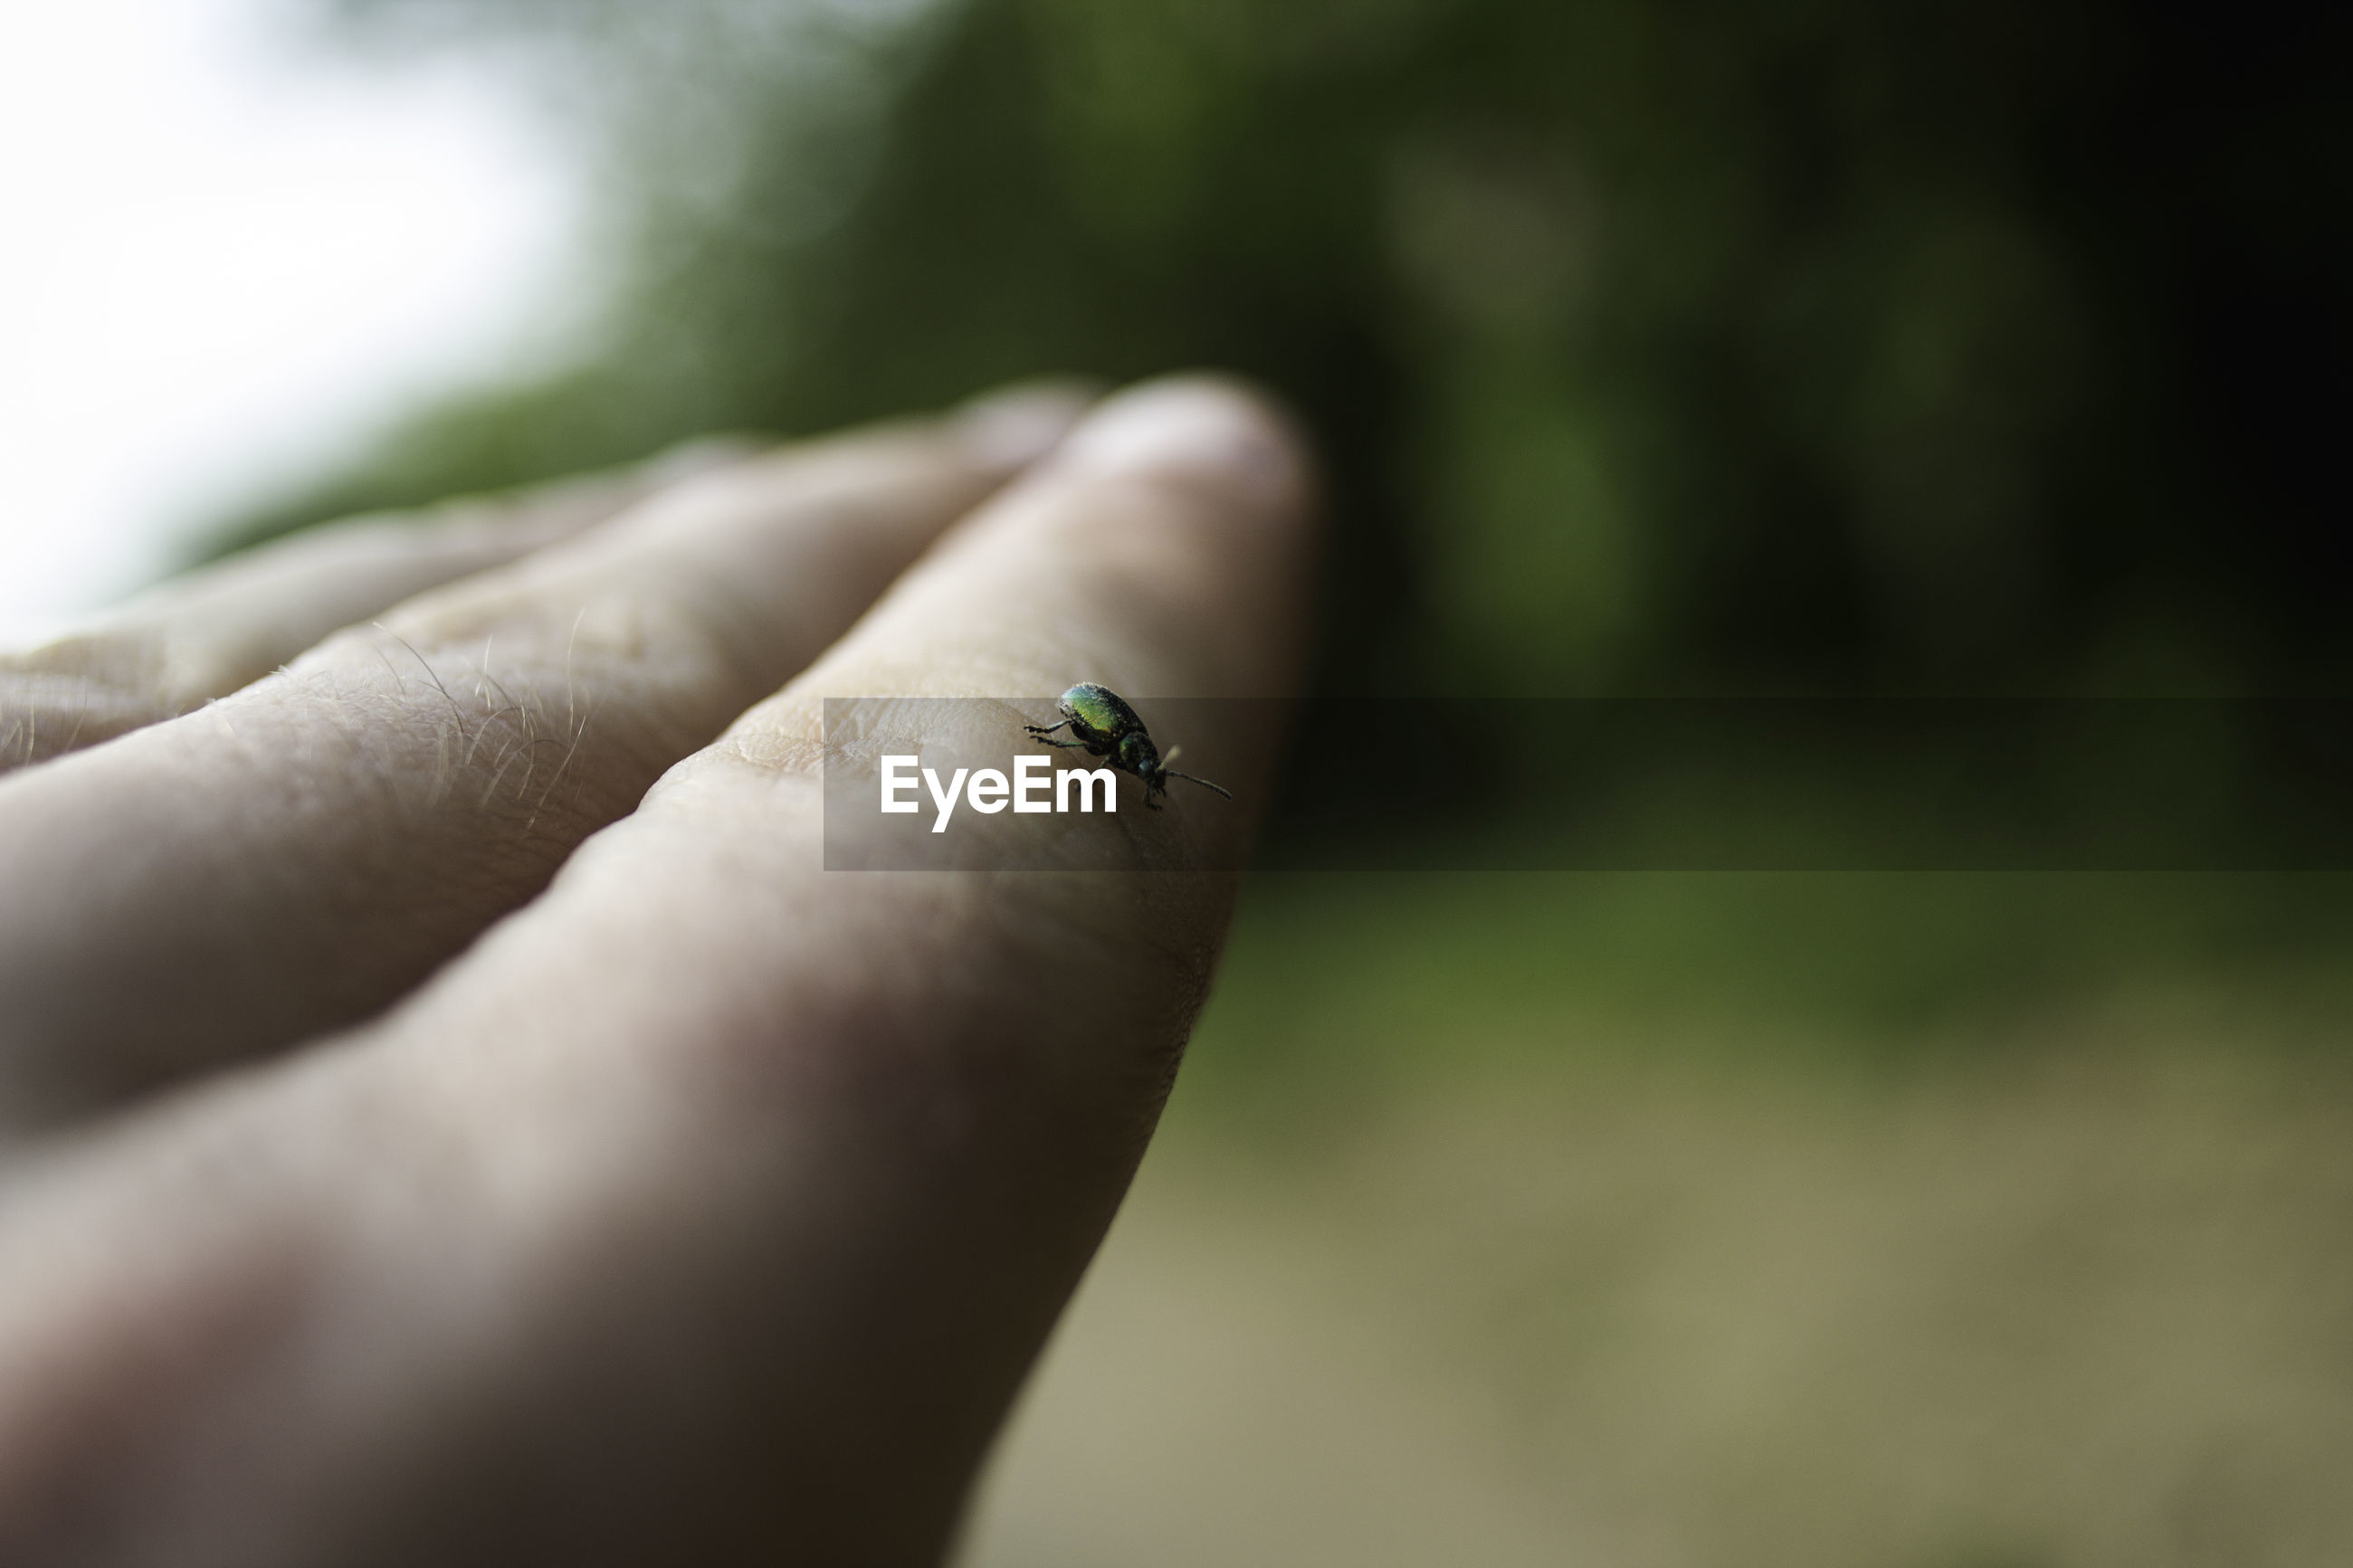 CLOSE-UP OF INSECT ON HUMAN HAND